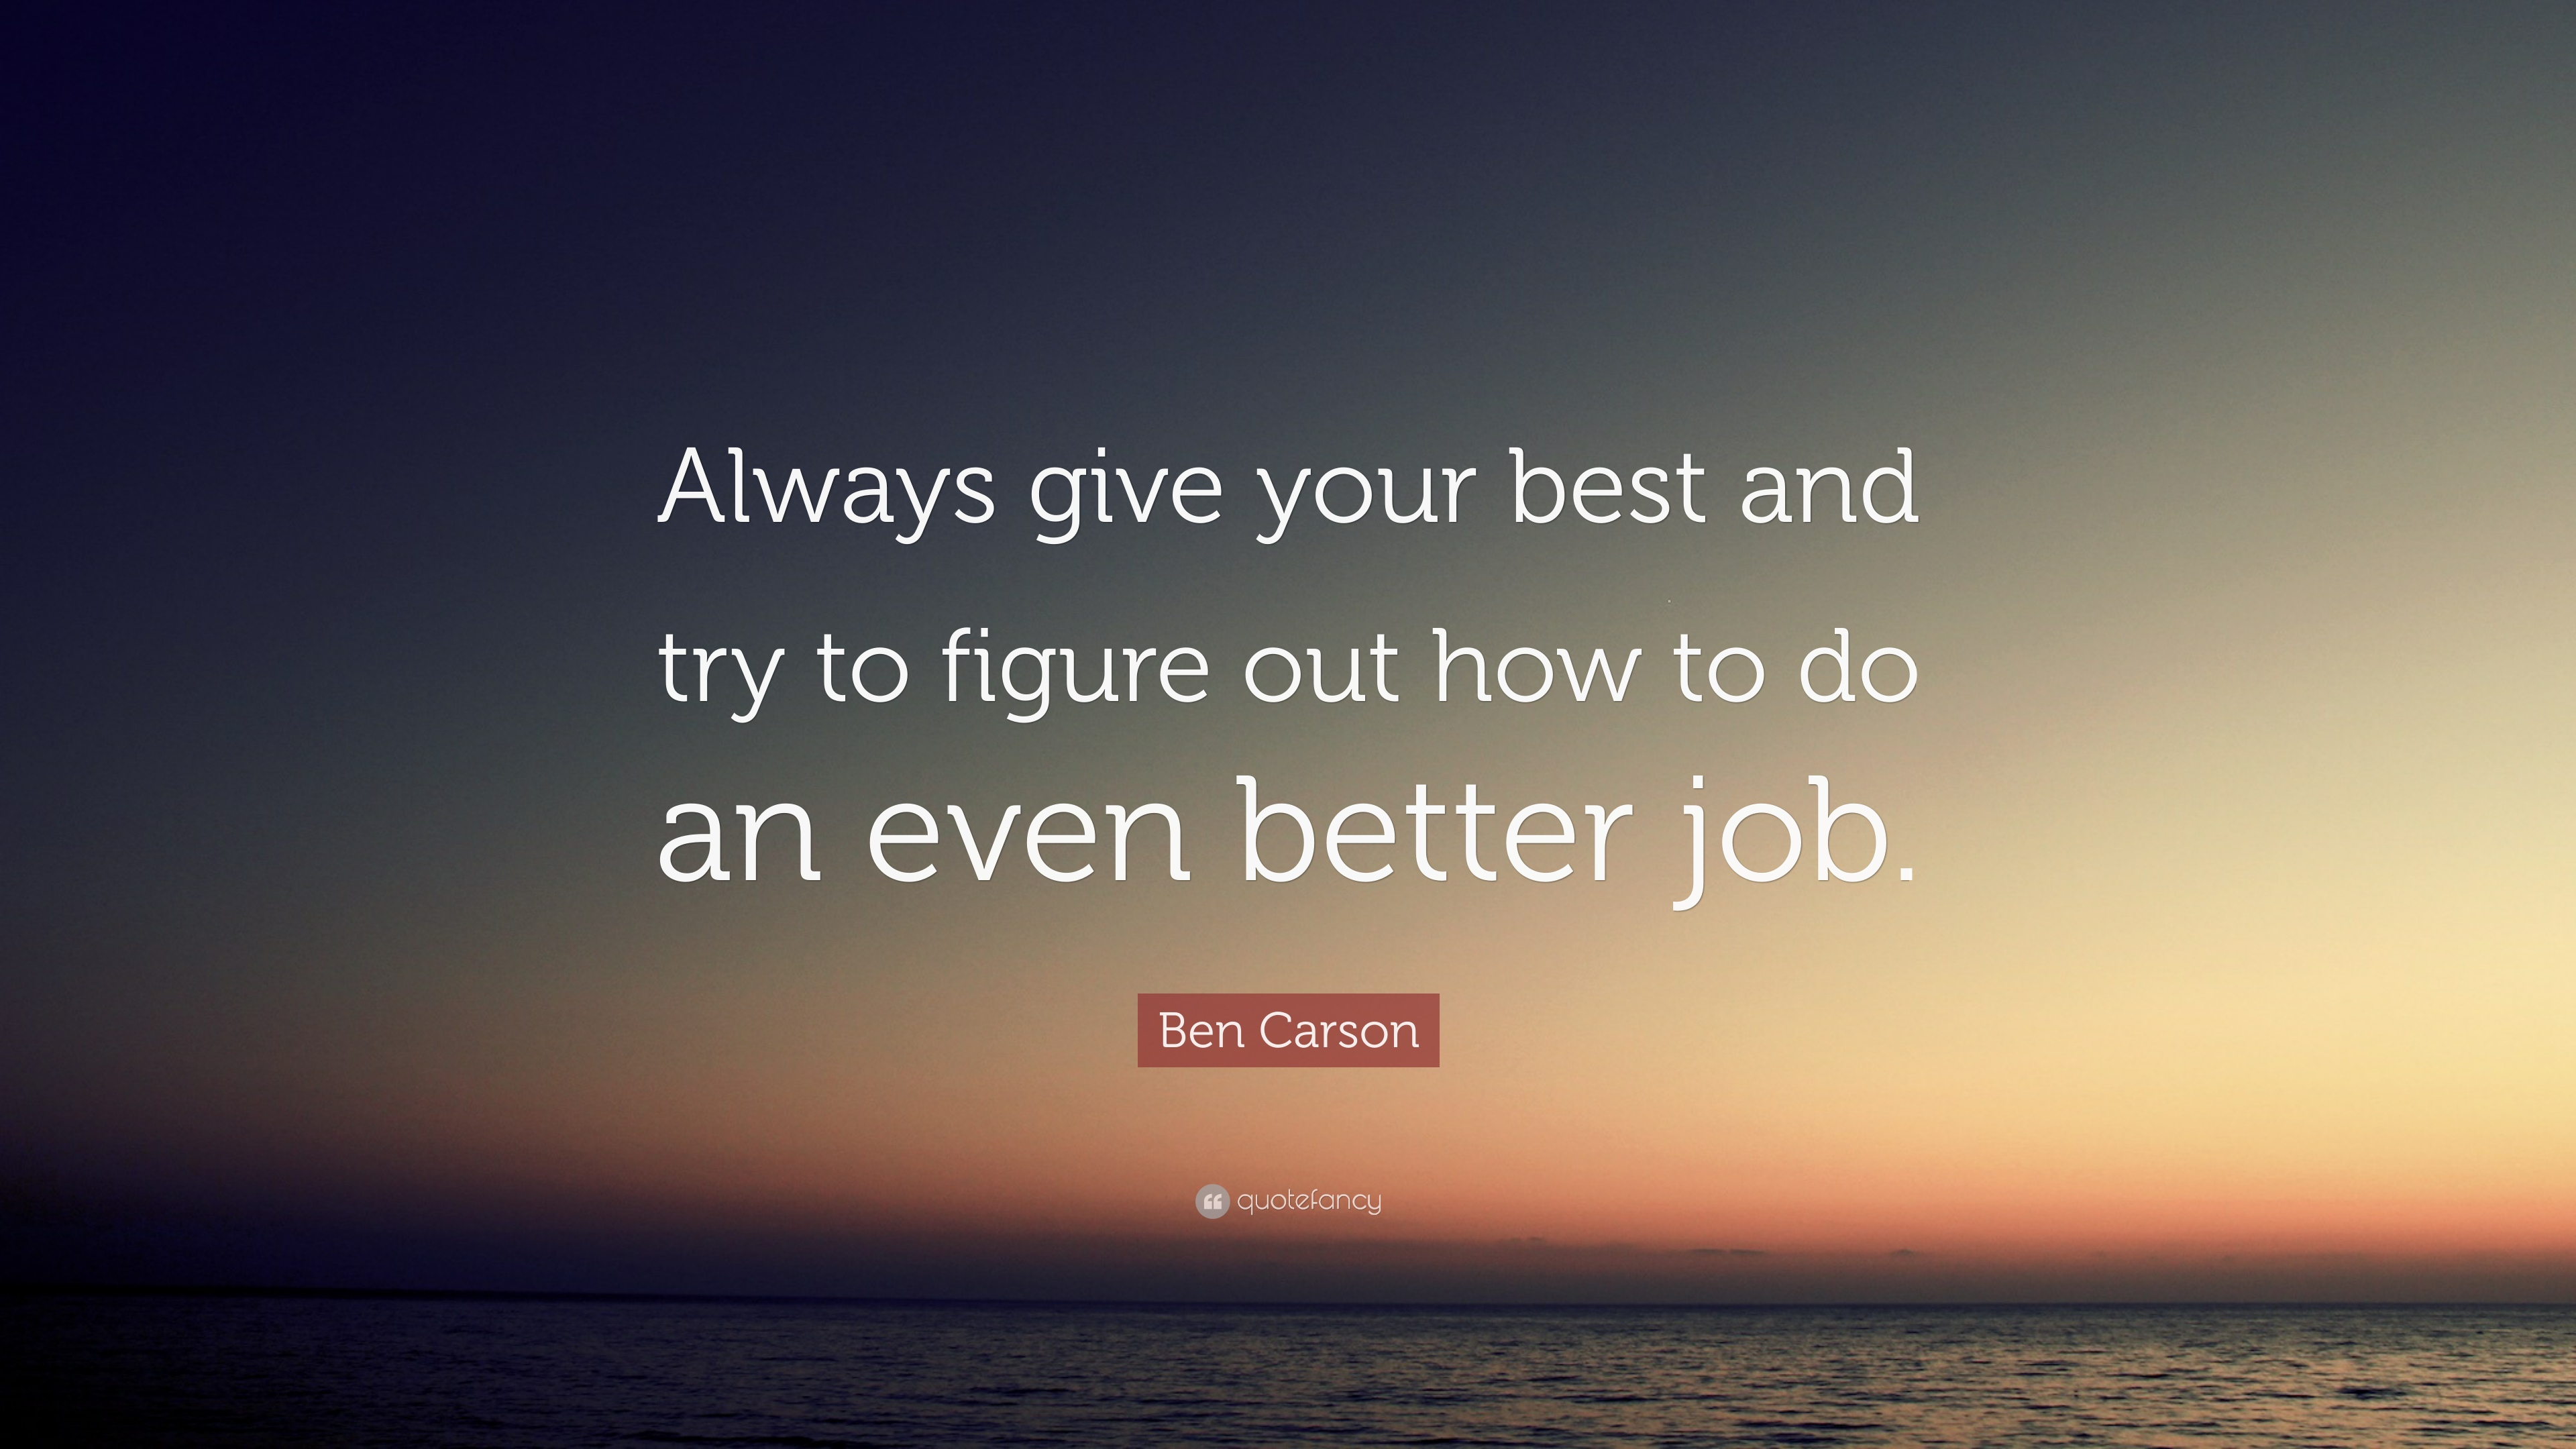 Ben Carson Quote Always Give Your Best And Try To Figure Out How